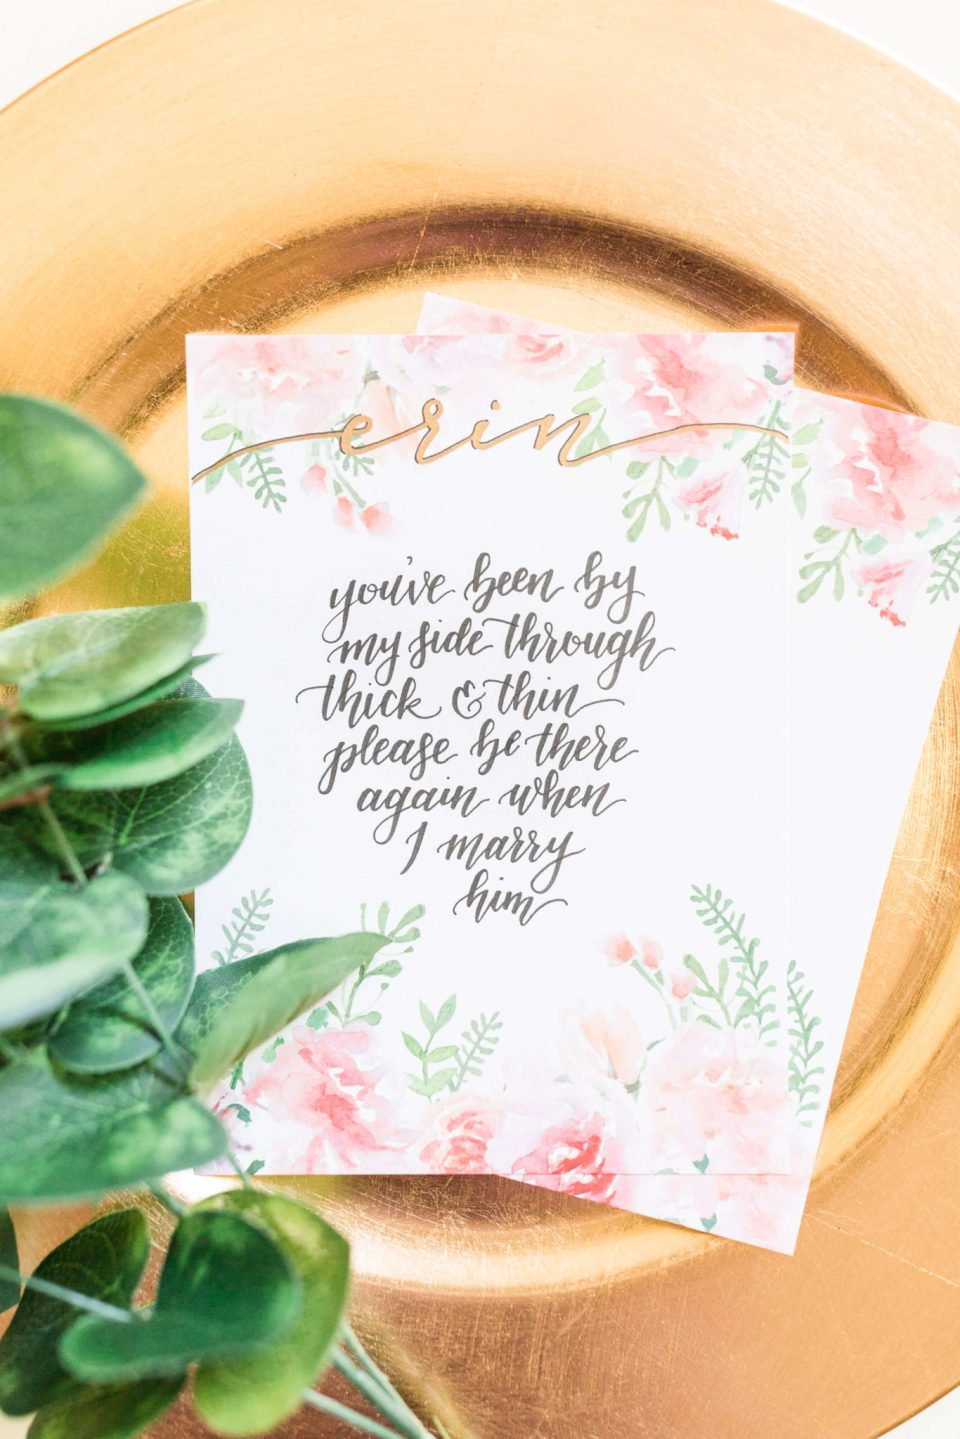 A floral bridal party invite lays on a gold plate with greenery